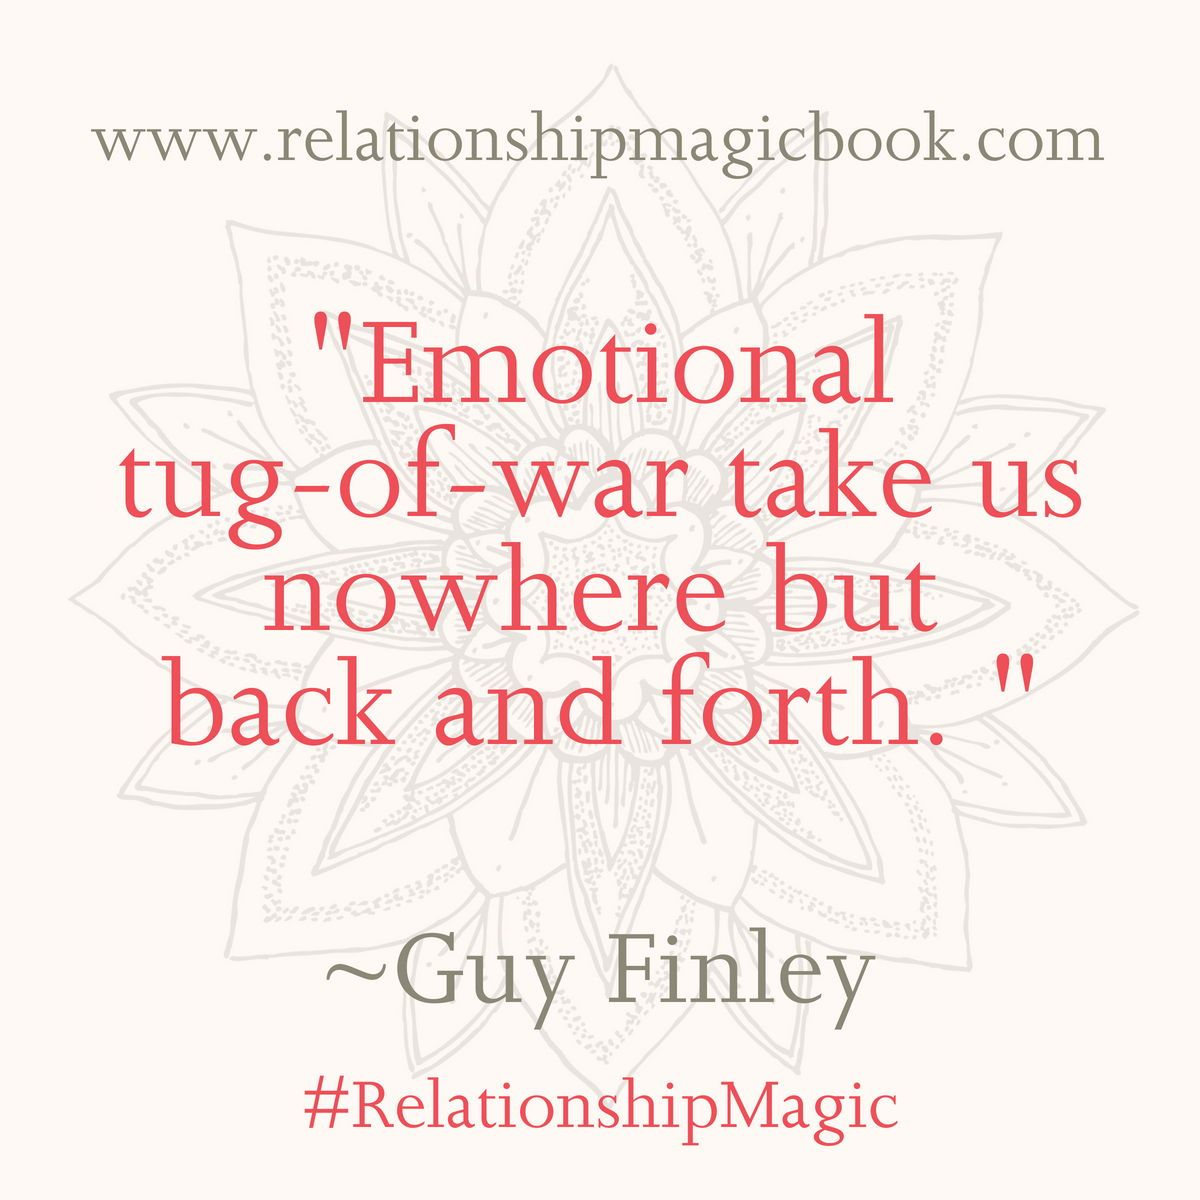 Emotional Tug Of War Takes Us Nowhere But Back And Forth Guy Finley Relationshipmagic Inspirationalquotes Rel War Quotes Tug Of War Relationship Quotes